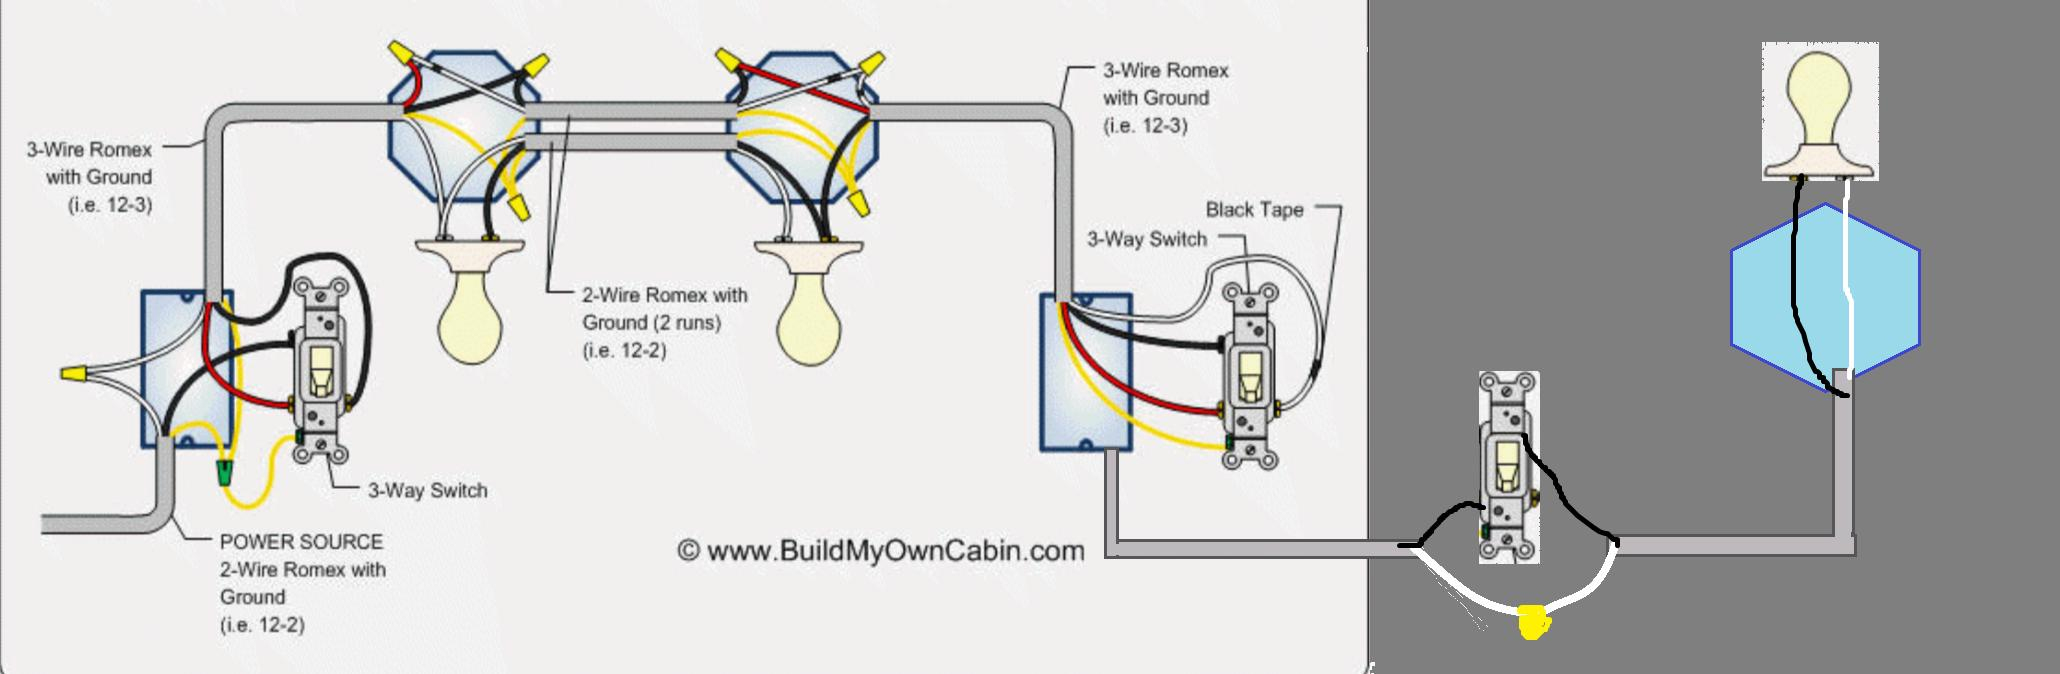 Wiring - Going From 3 Way Switch To A Regular Switch - Home - 3 Way Switch Wiring Diagram Power At Switch